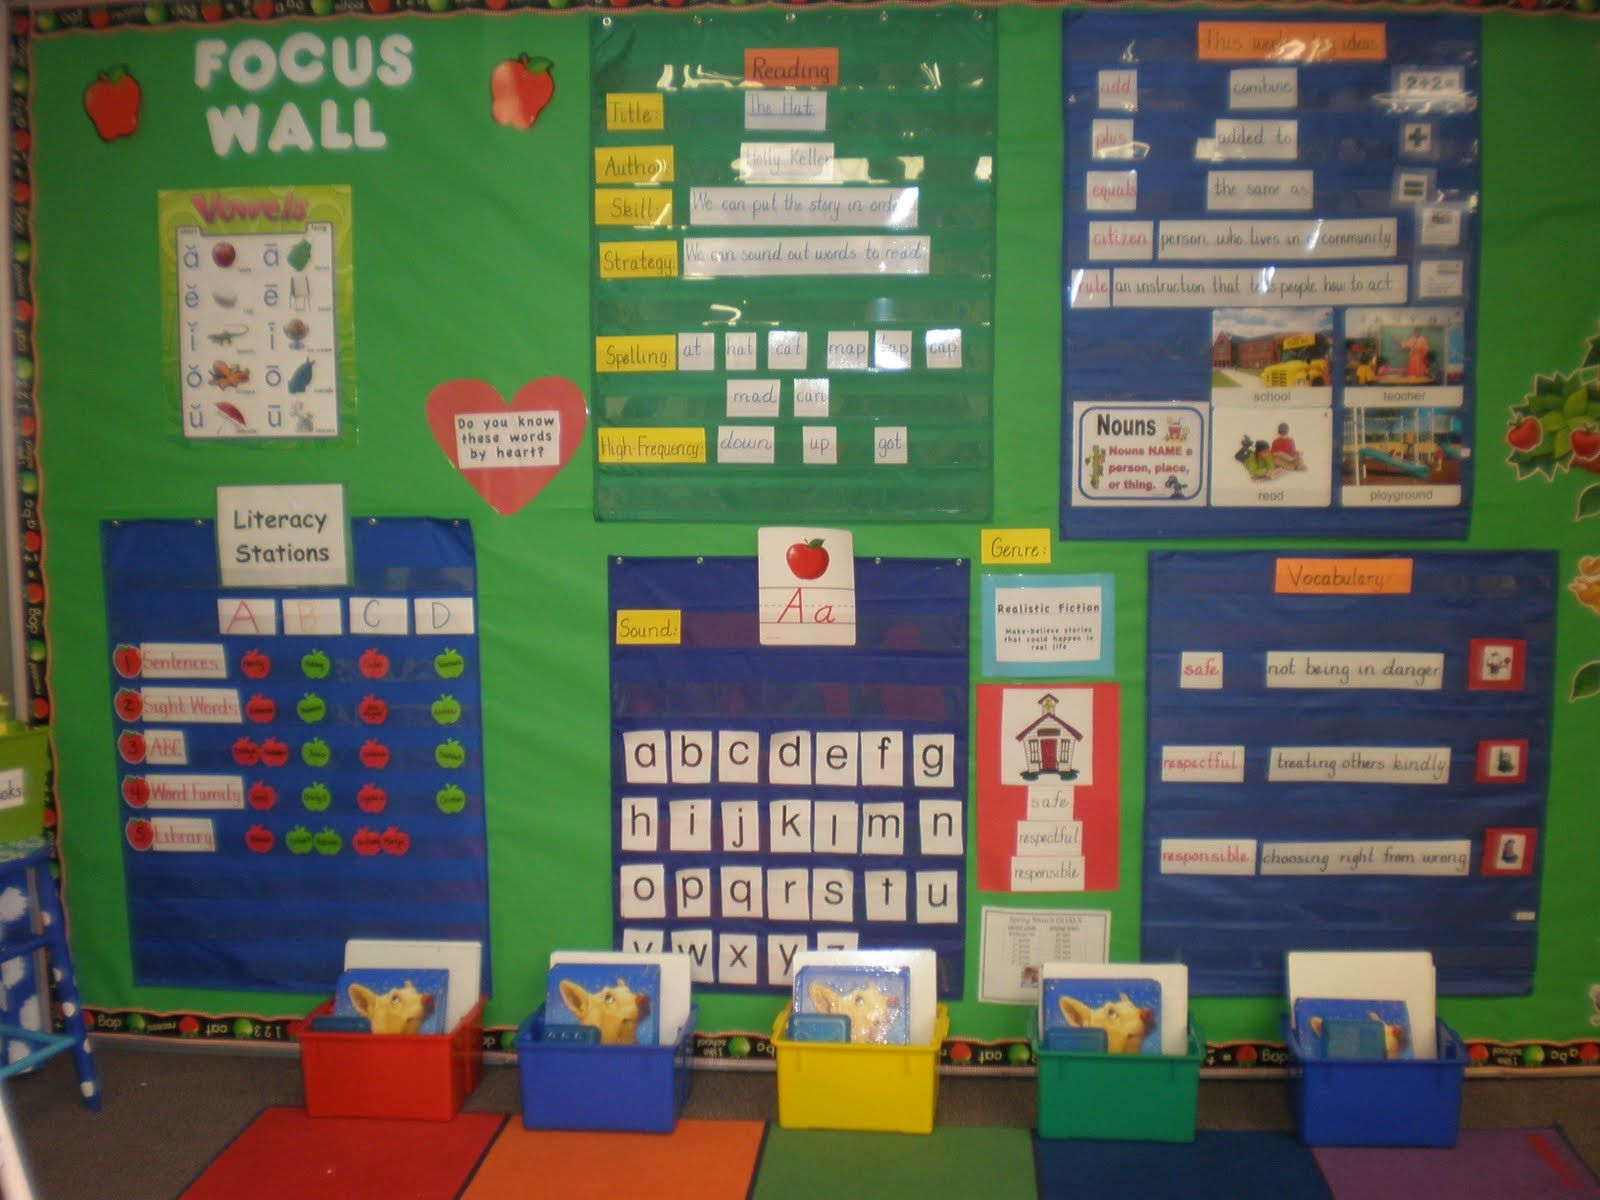 Kindergarten Classroom Calendar Wall : Preschool room setup my focus wall reading area